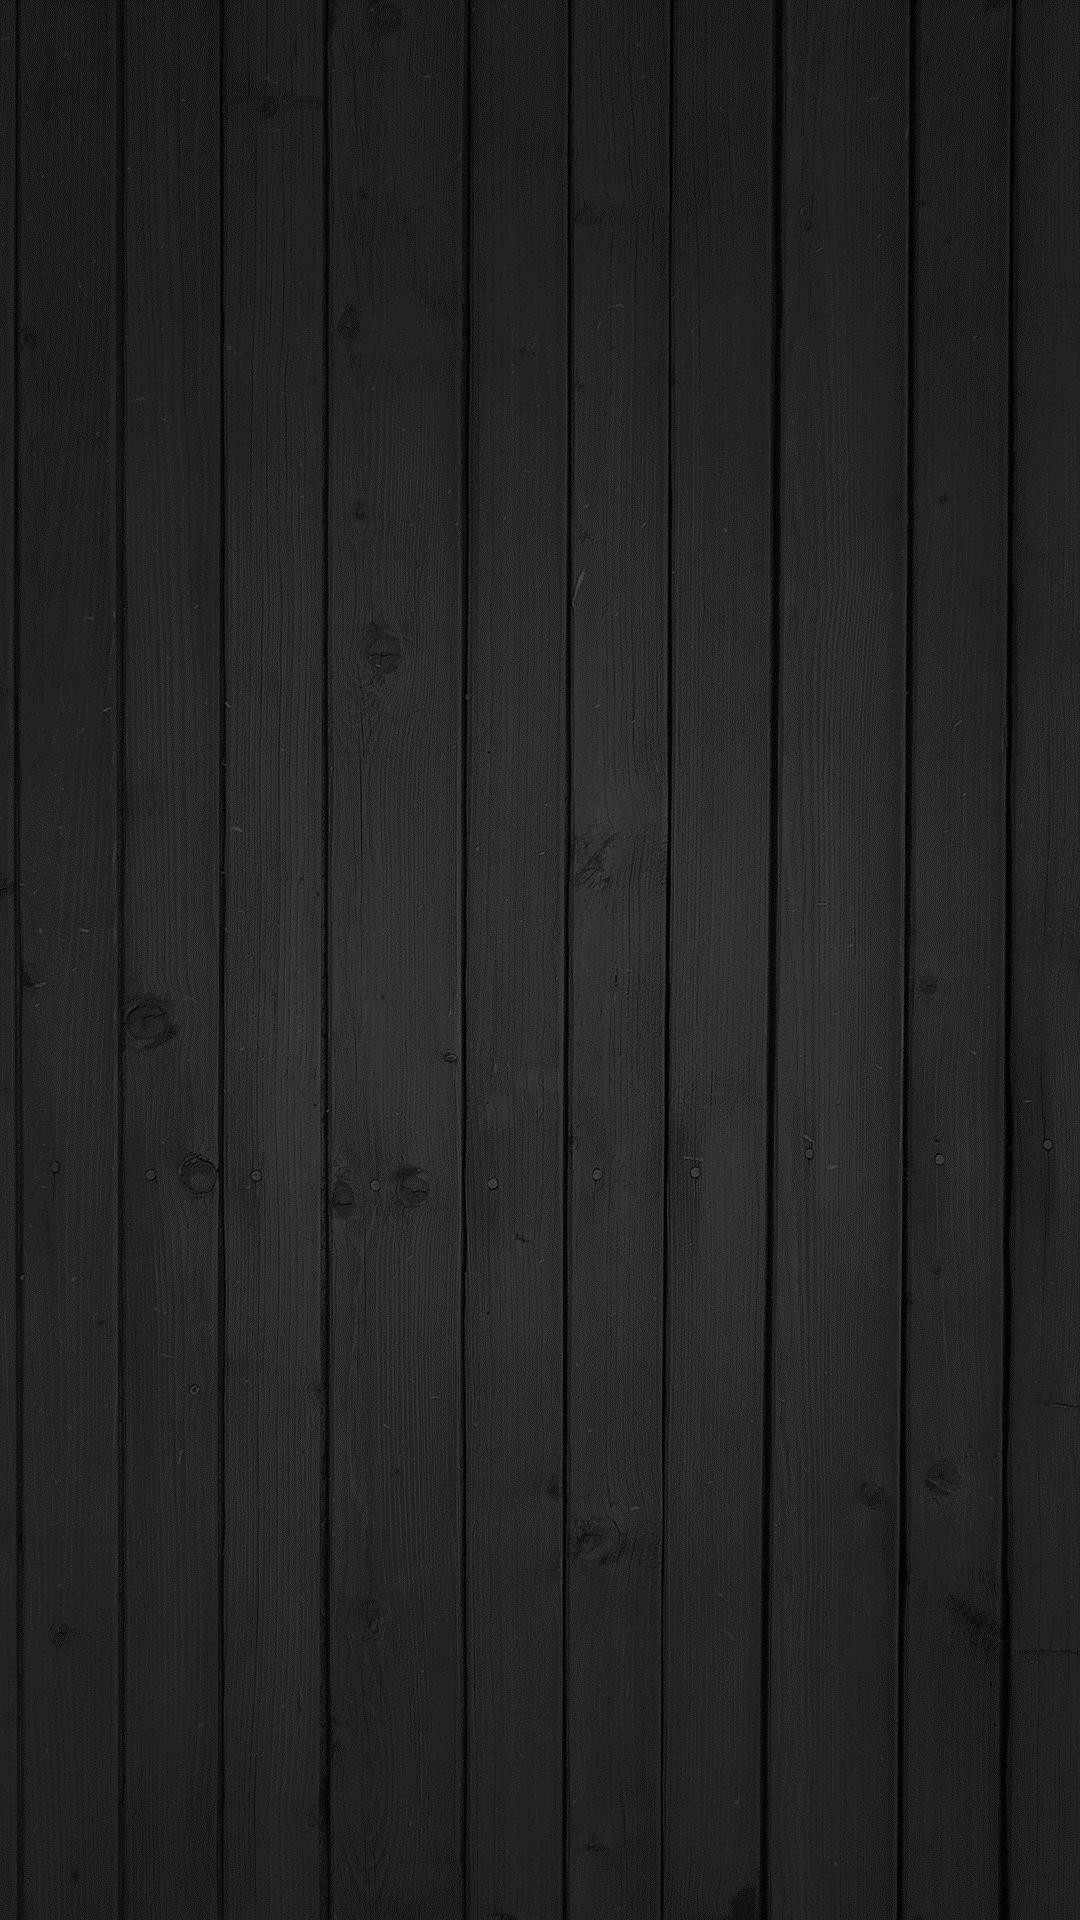 1080x1920 Black Wood Texture Android Wallpaper ...